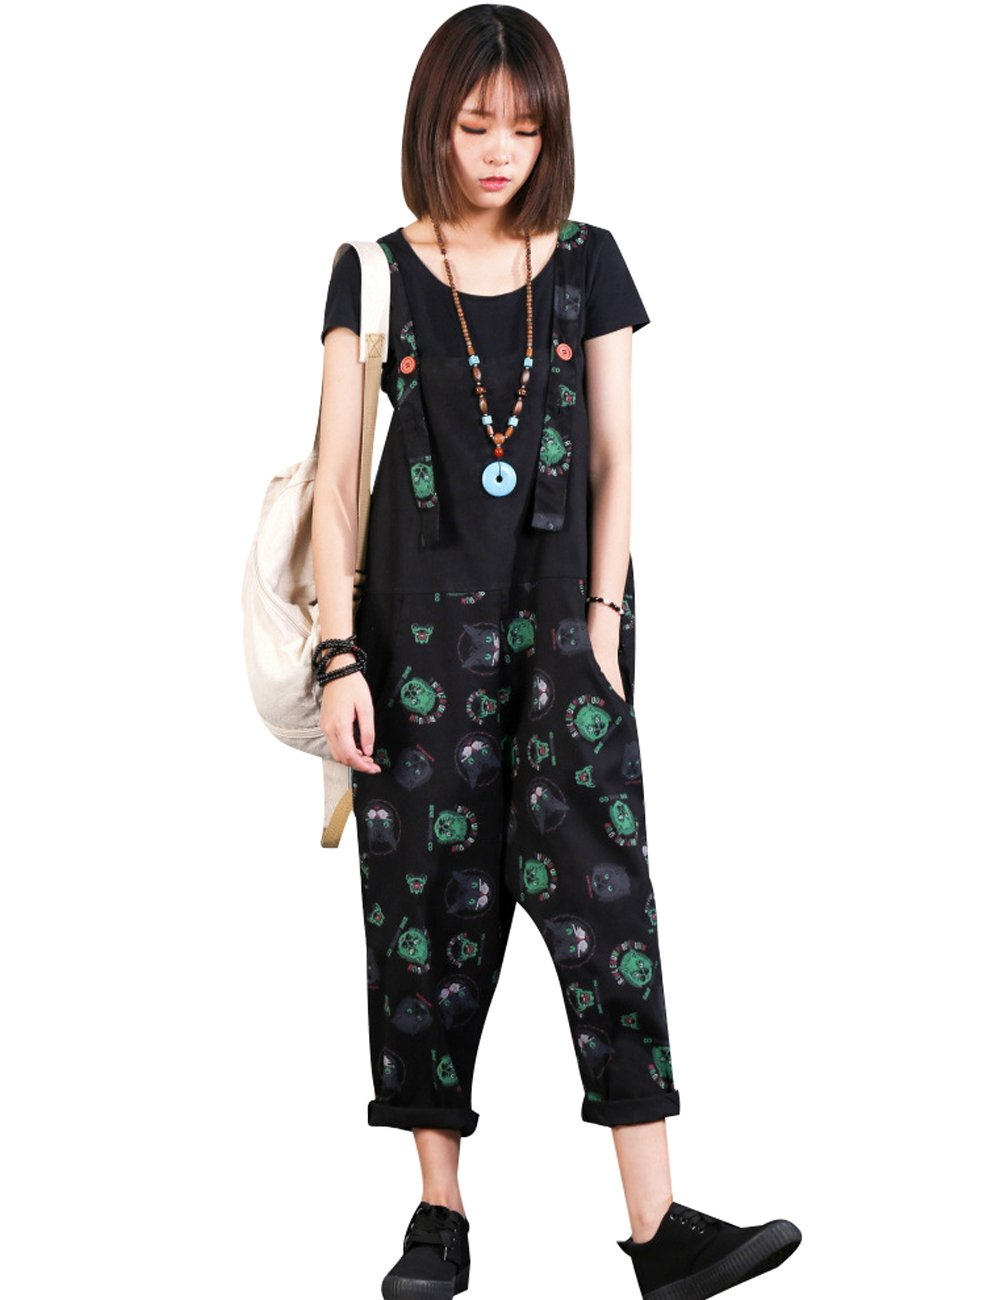 Zoulee Women Strap Rompers Jumpsuits Denim Casual Bib Pants Floral Wide Leg Cropped Pants Overalls Style 4 Black